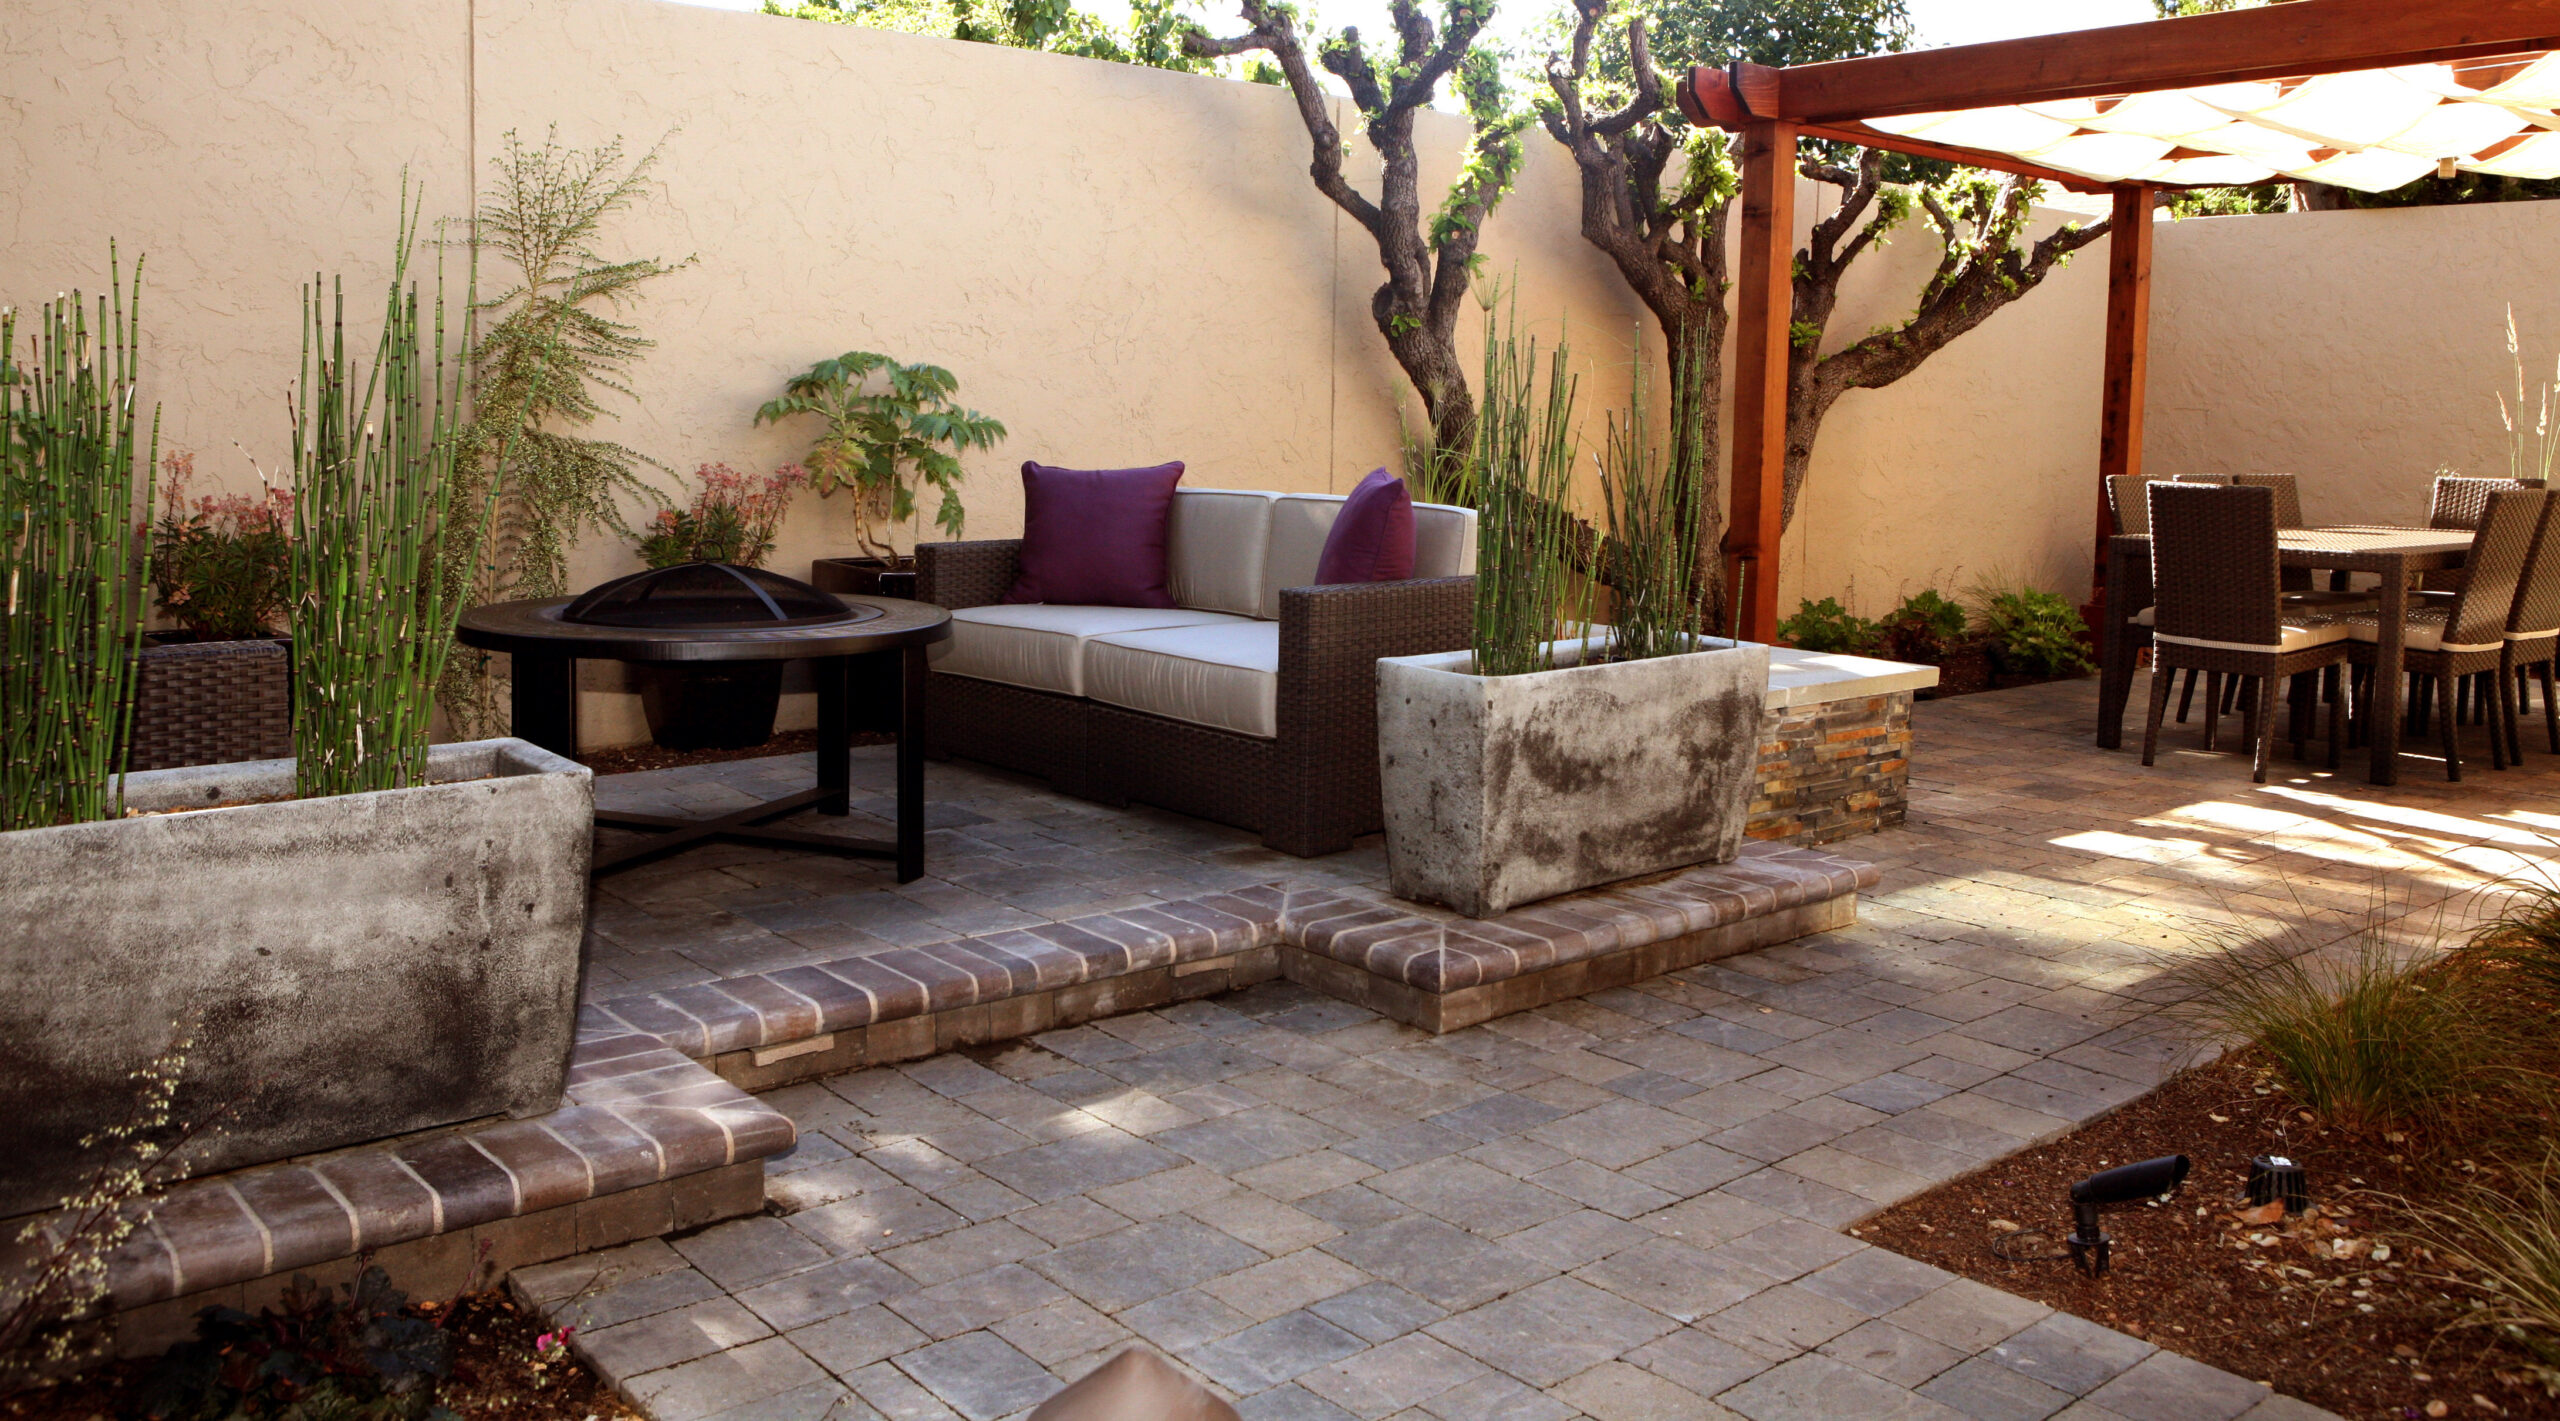 Featured Material – Pavers